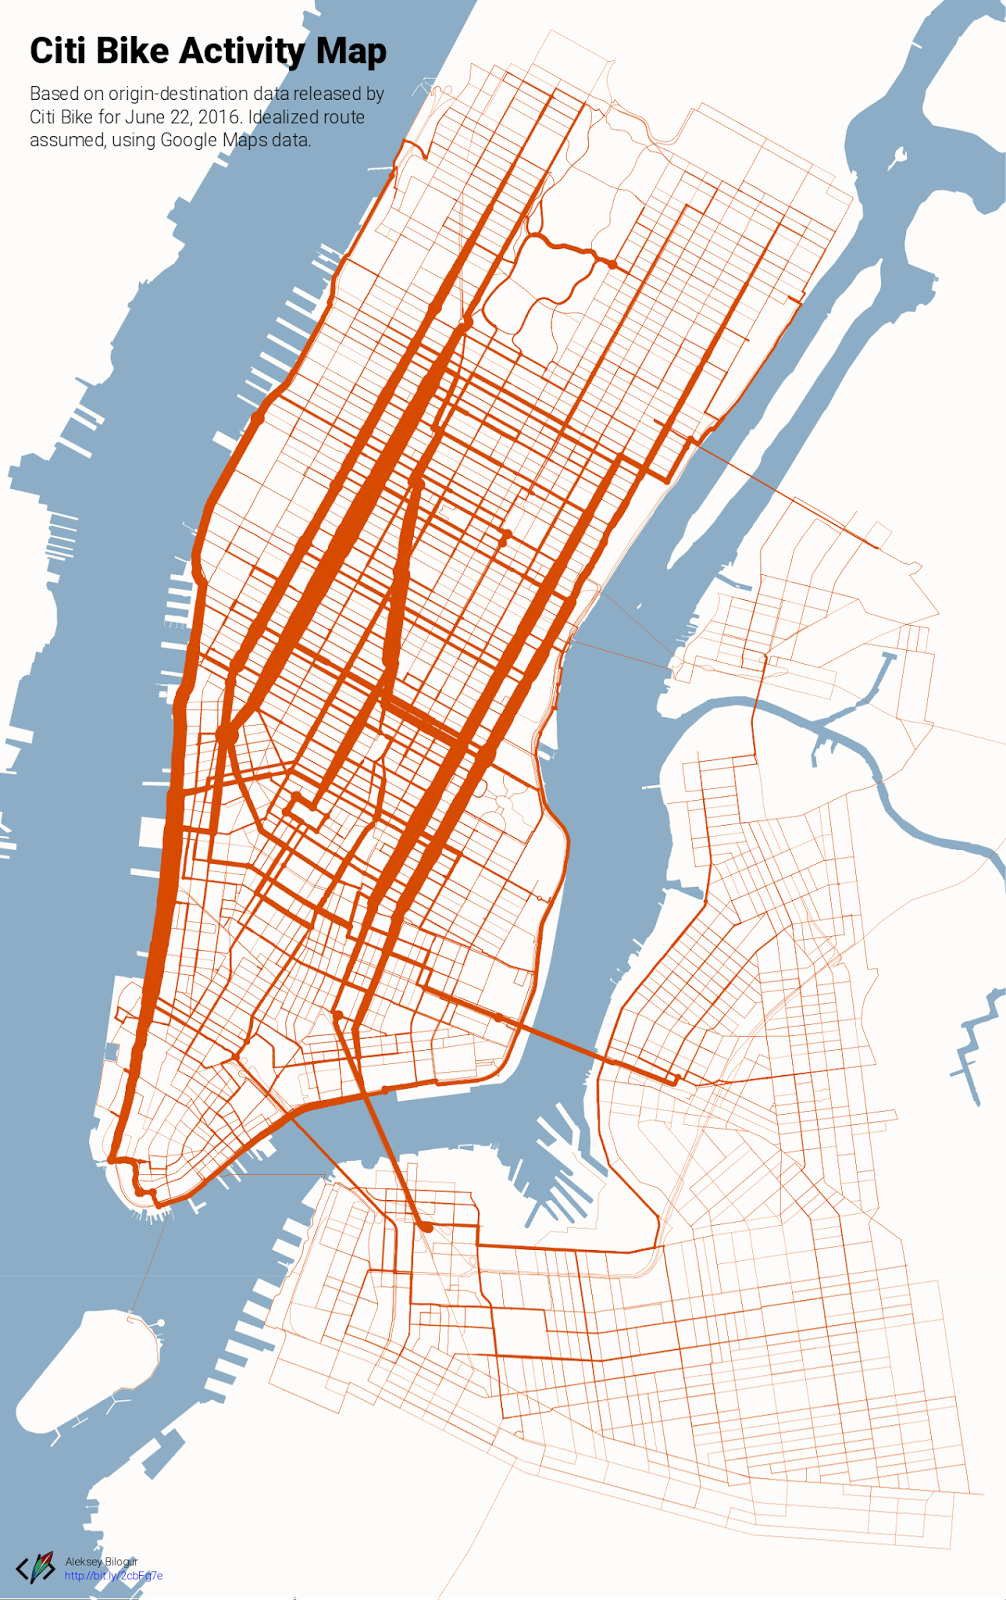 New York City bikeshare activity map (June 22, 2016)